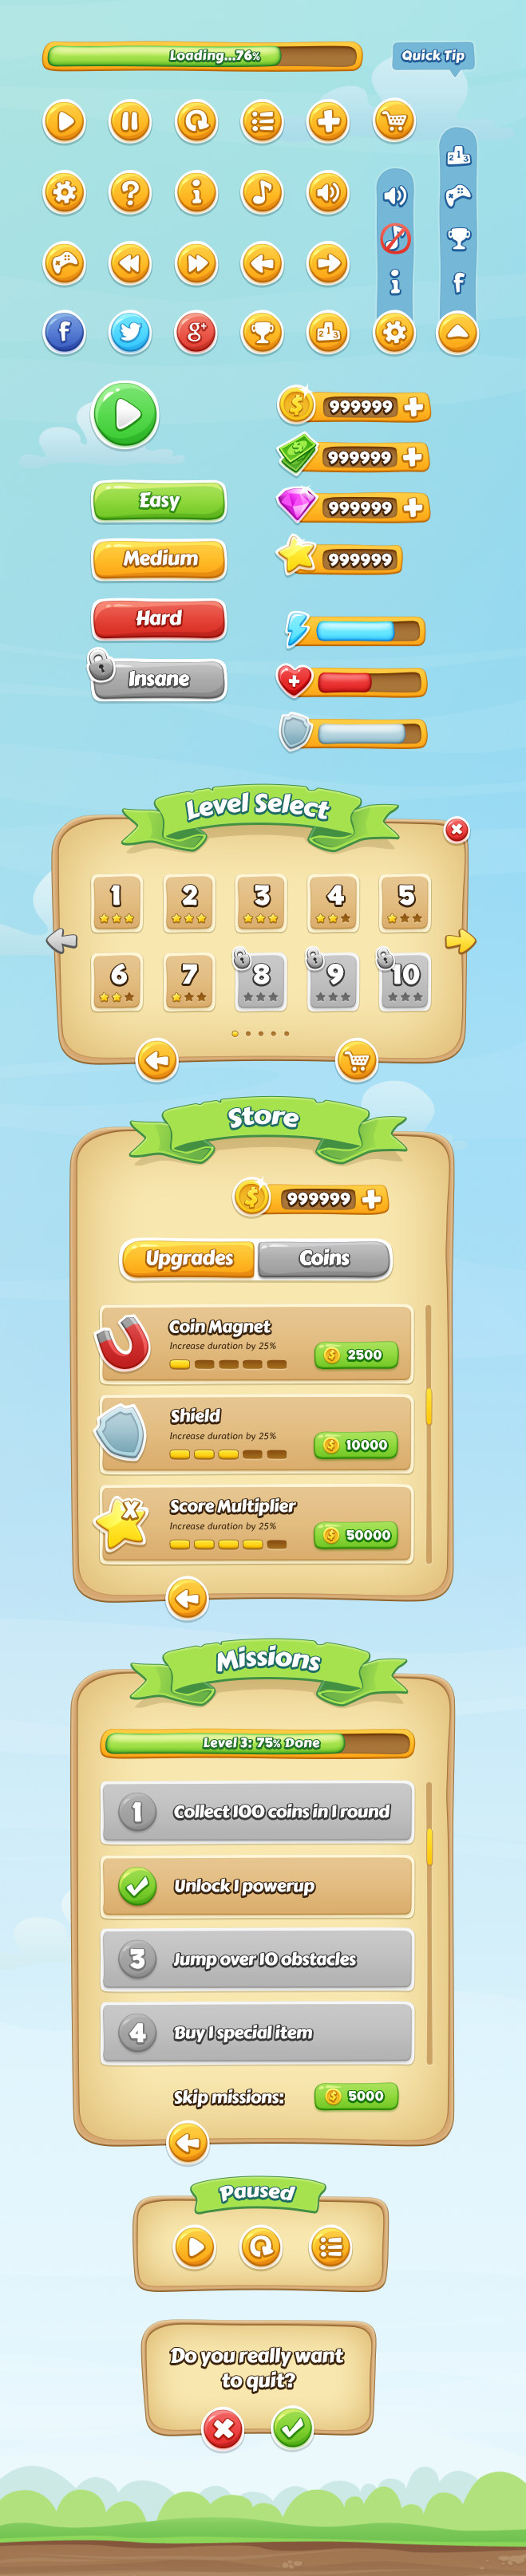 Mobile Game GUI by Graphic Burger